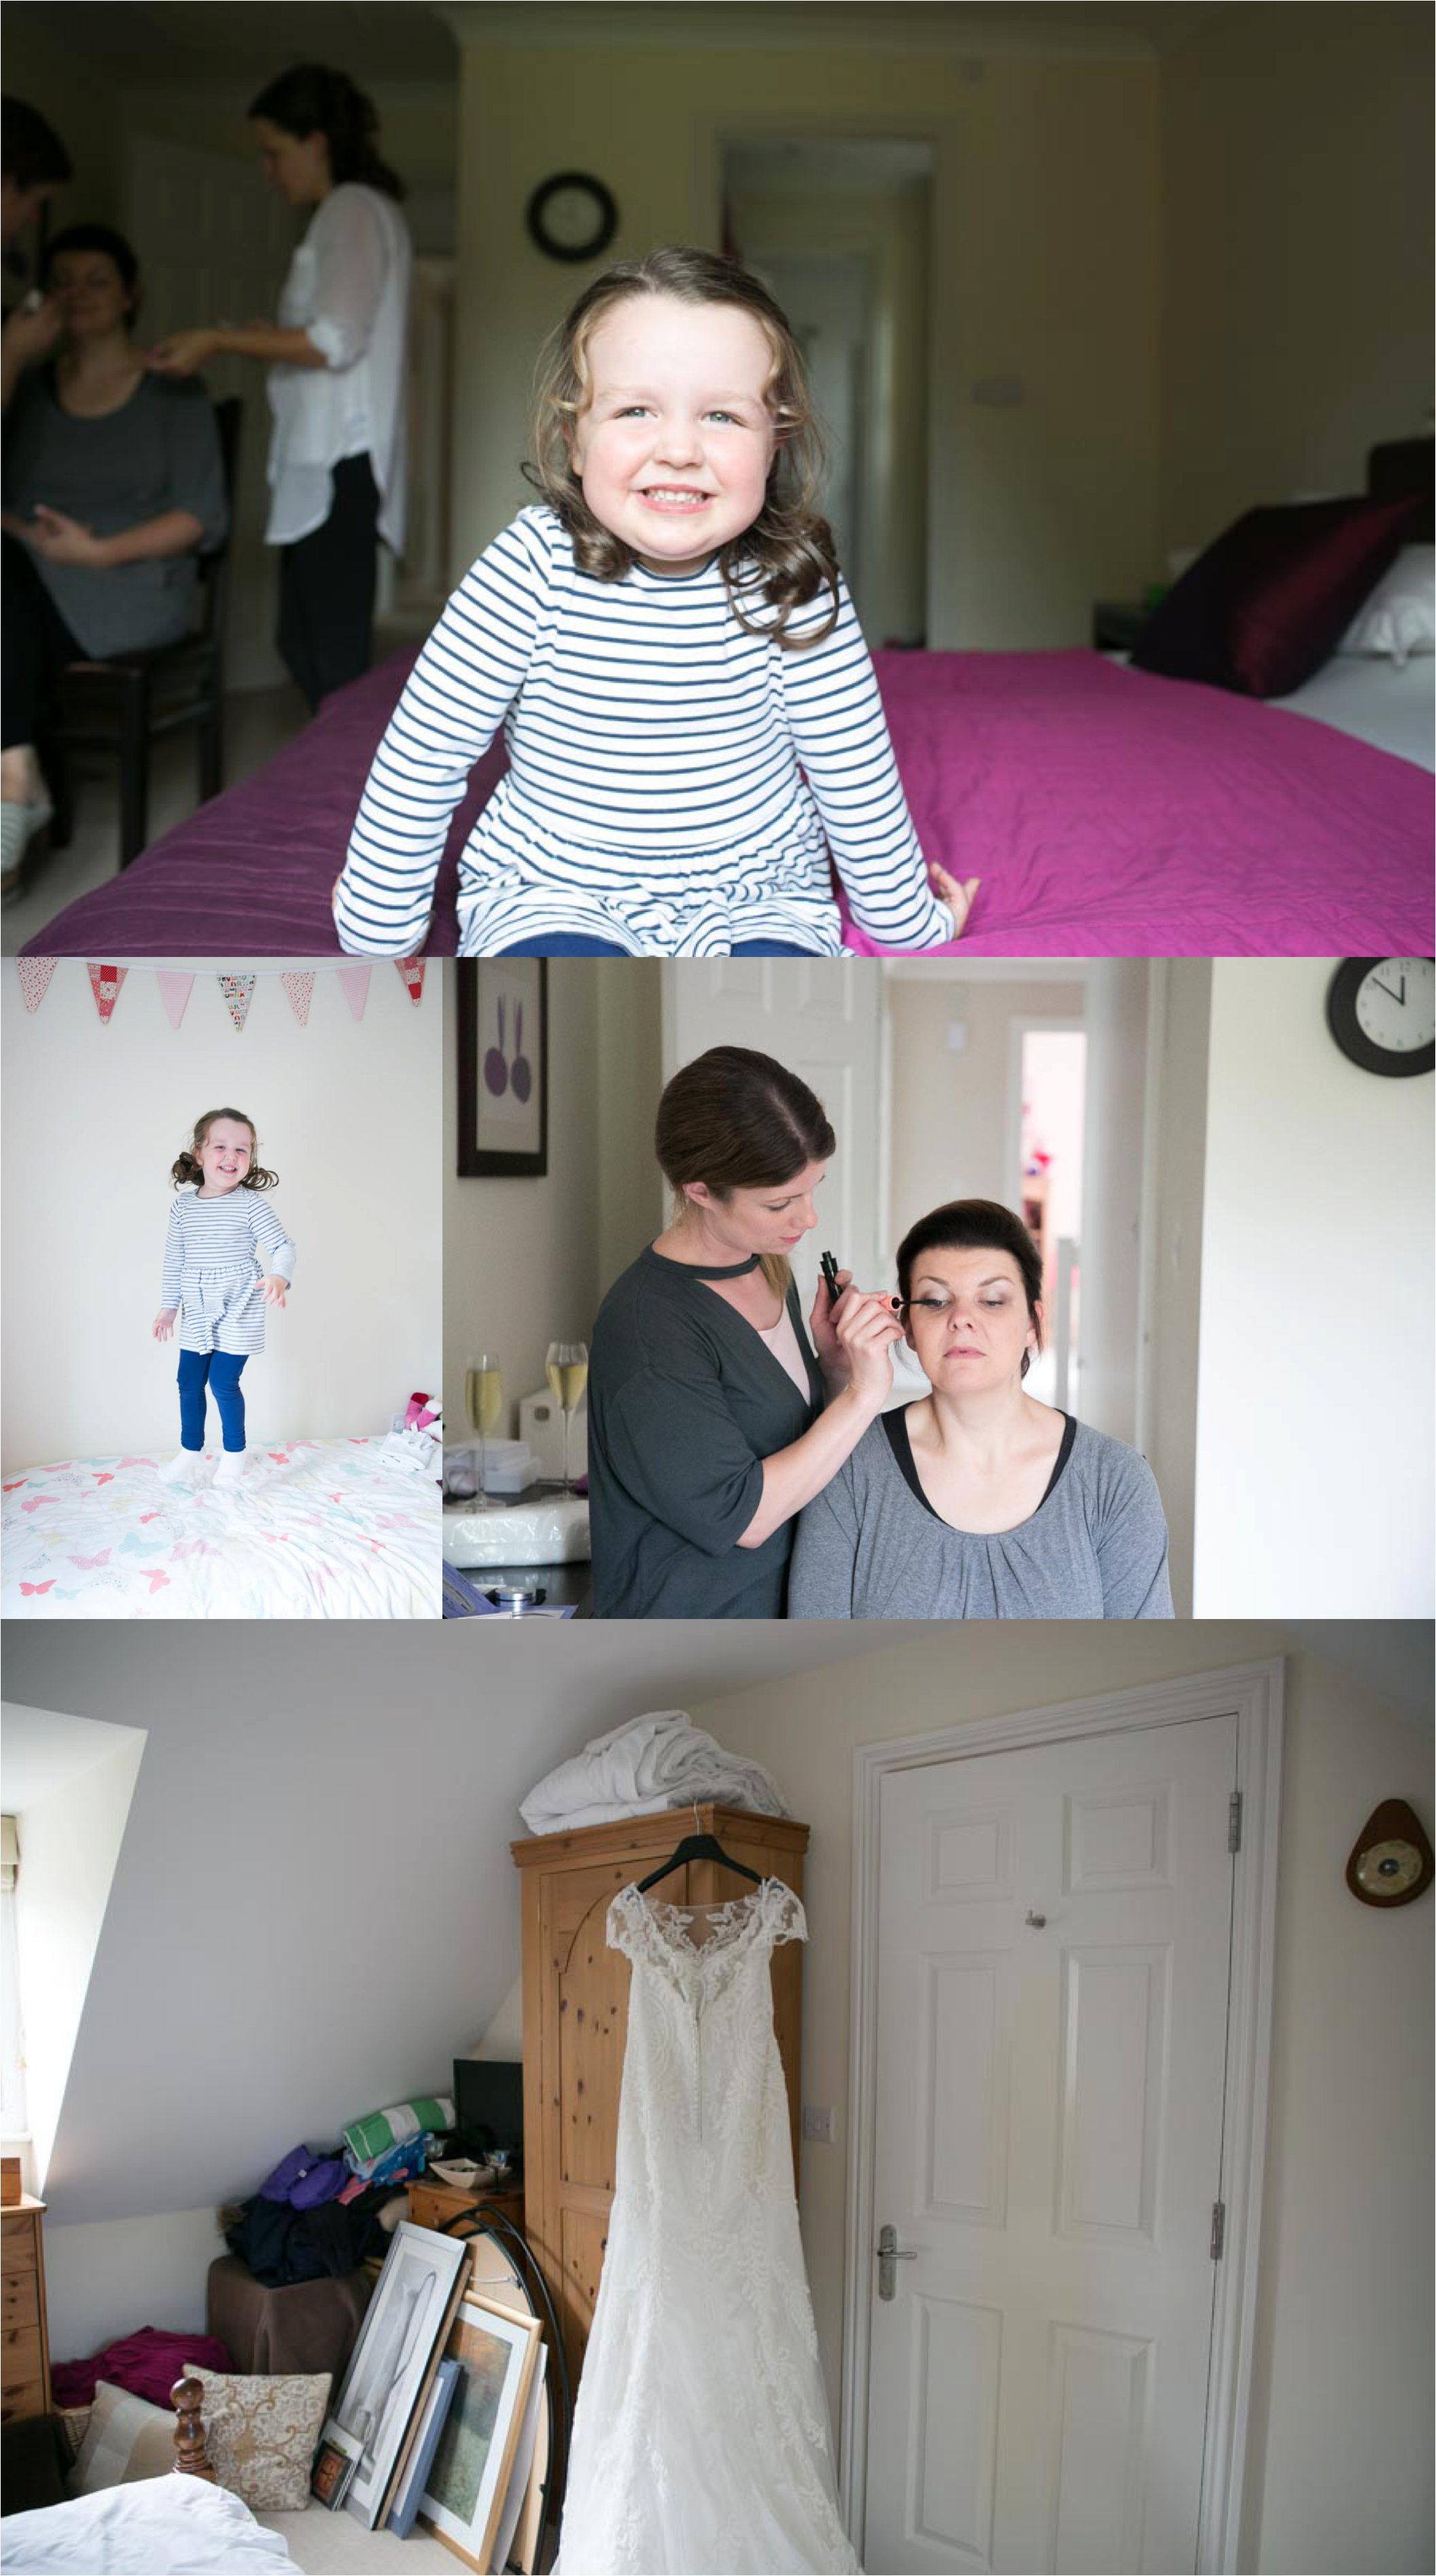 mildenhall wedding photography, getting ready at home